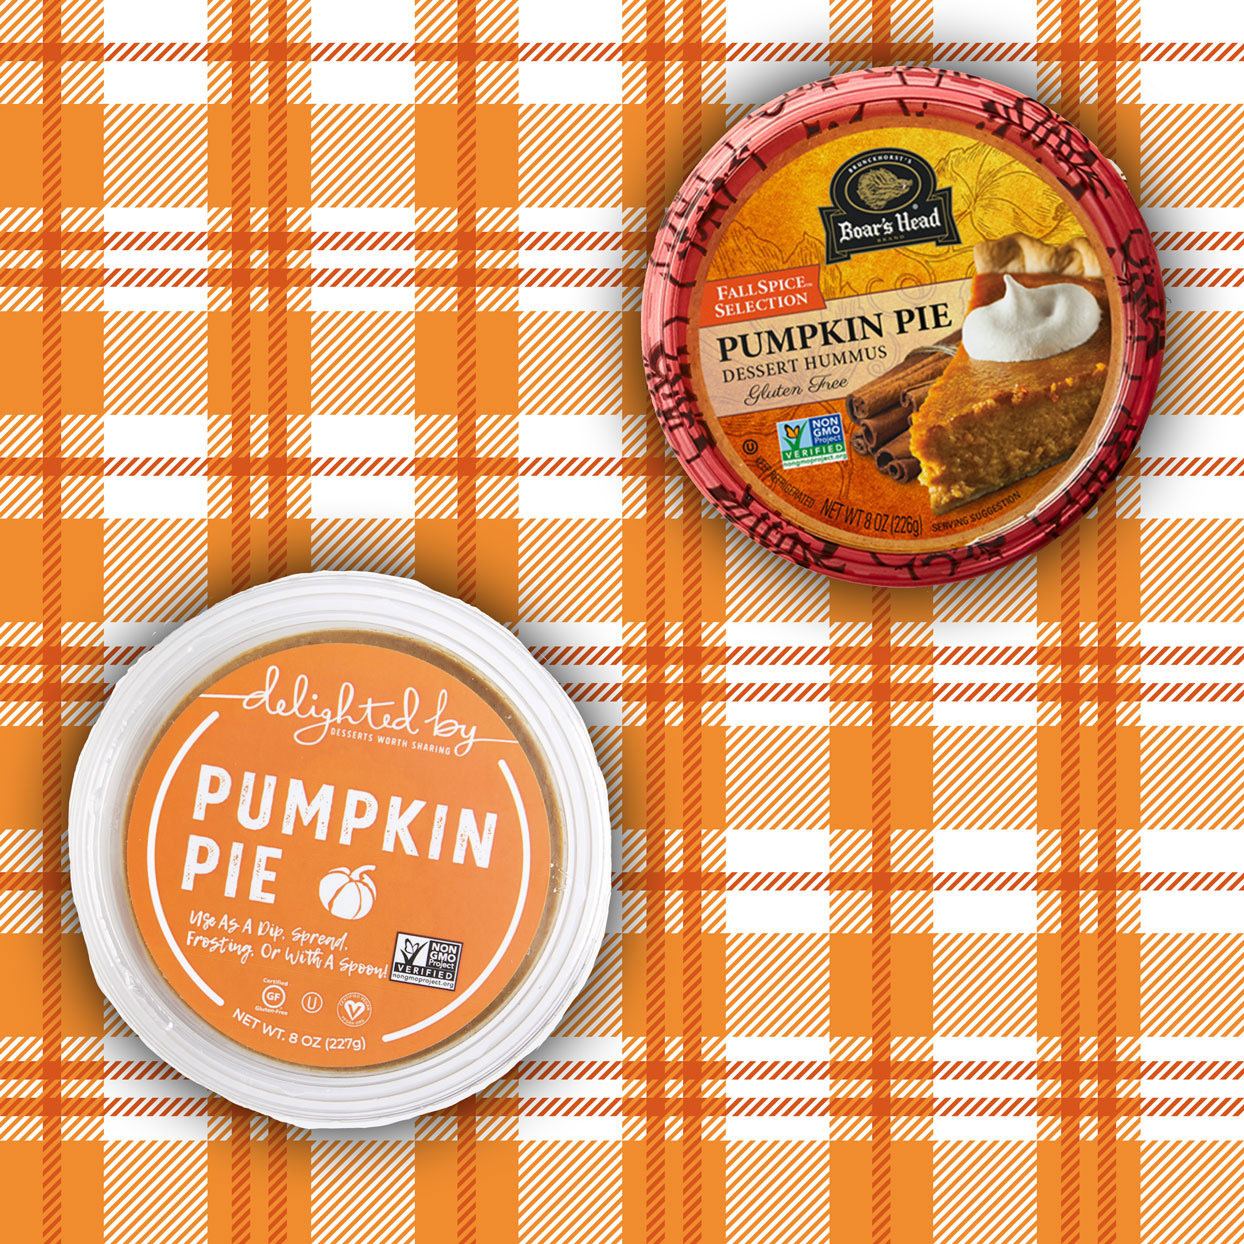 2 containers of Pumpkin Pie Dessert Hummus